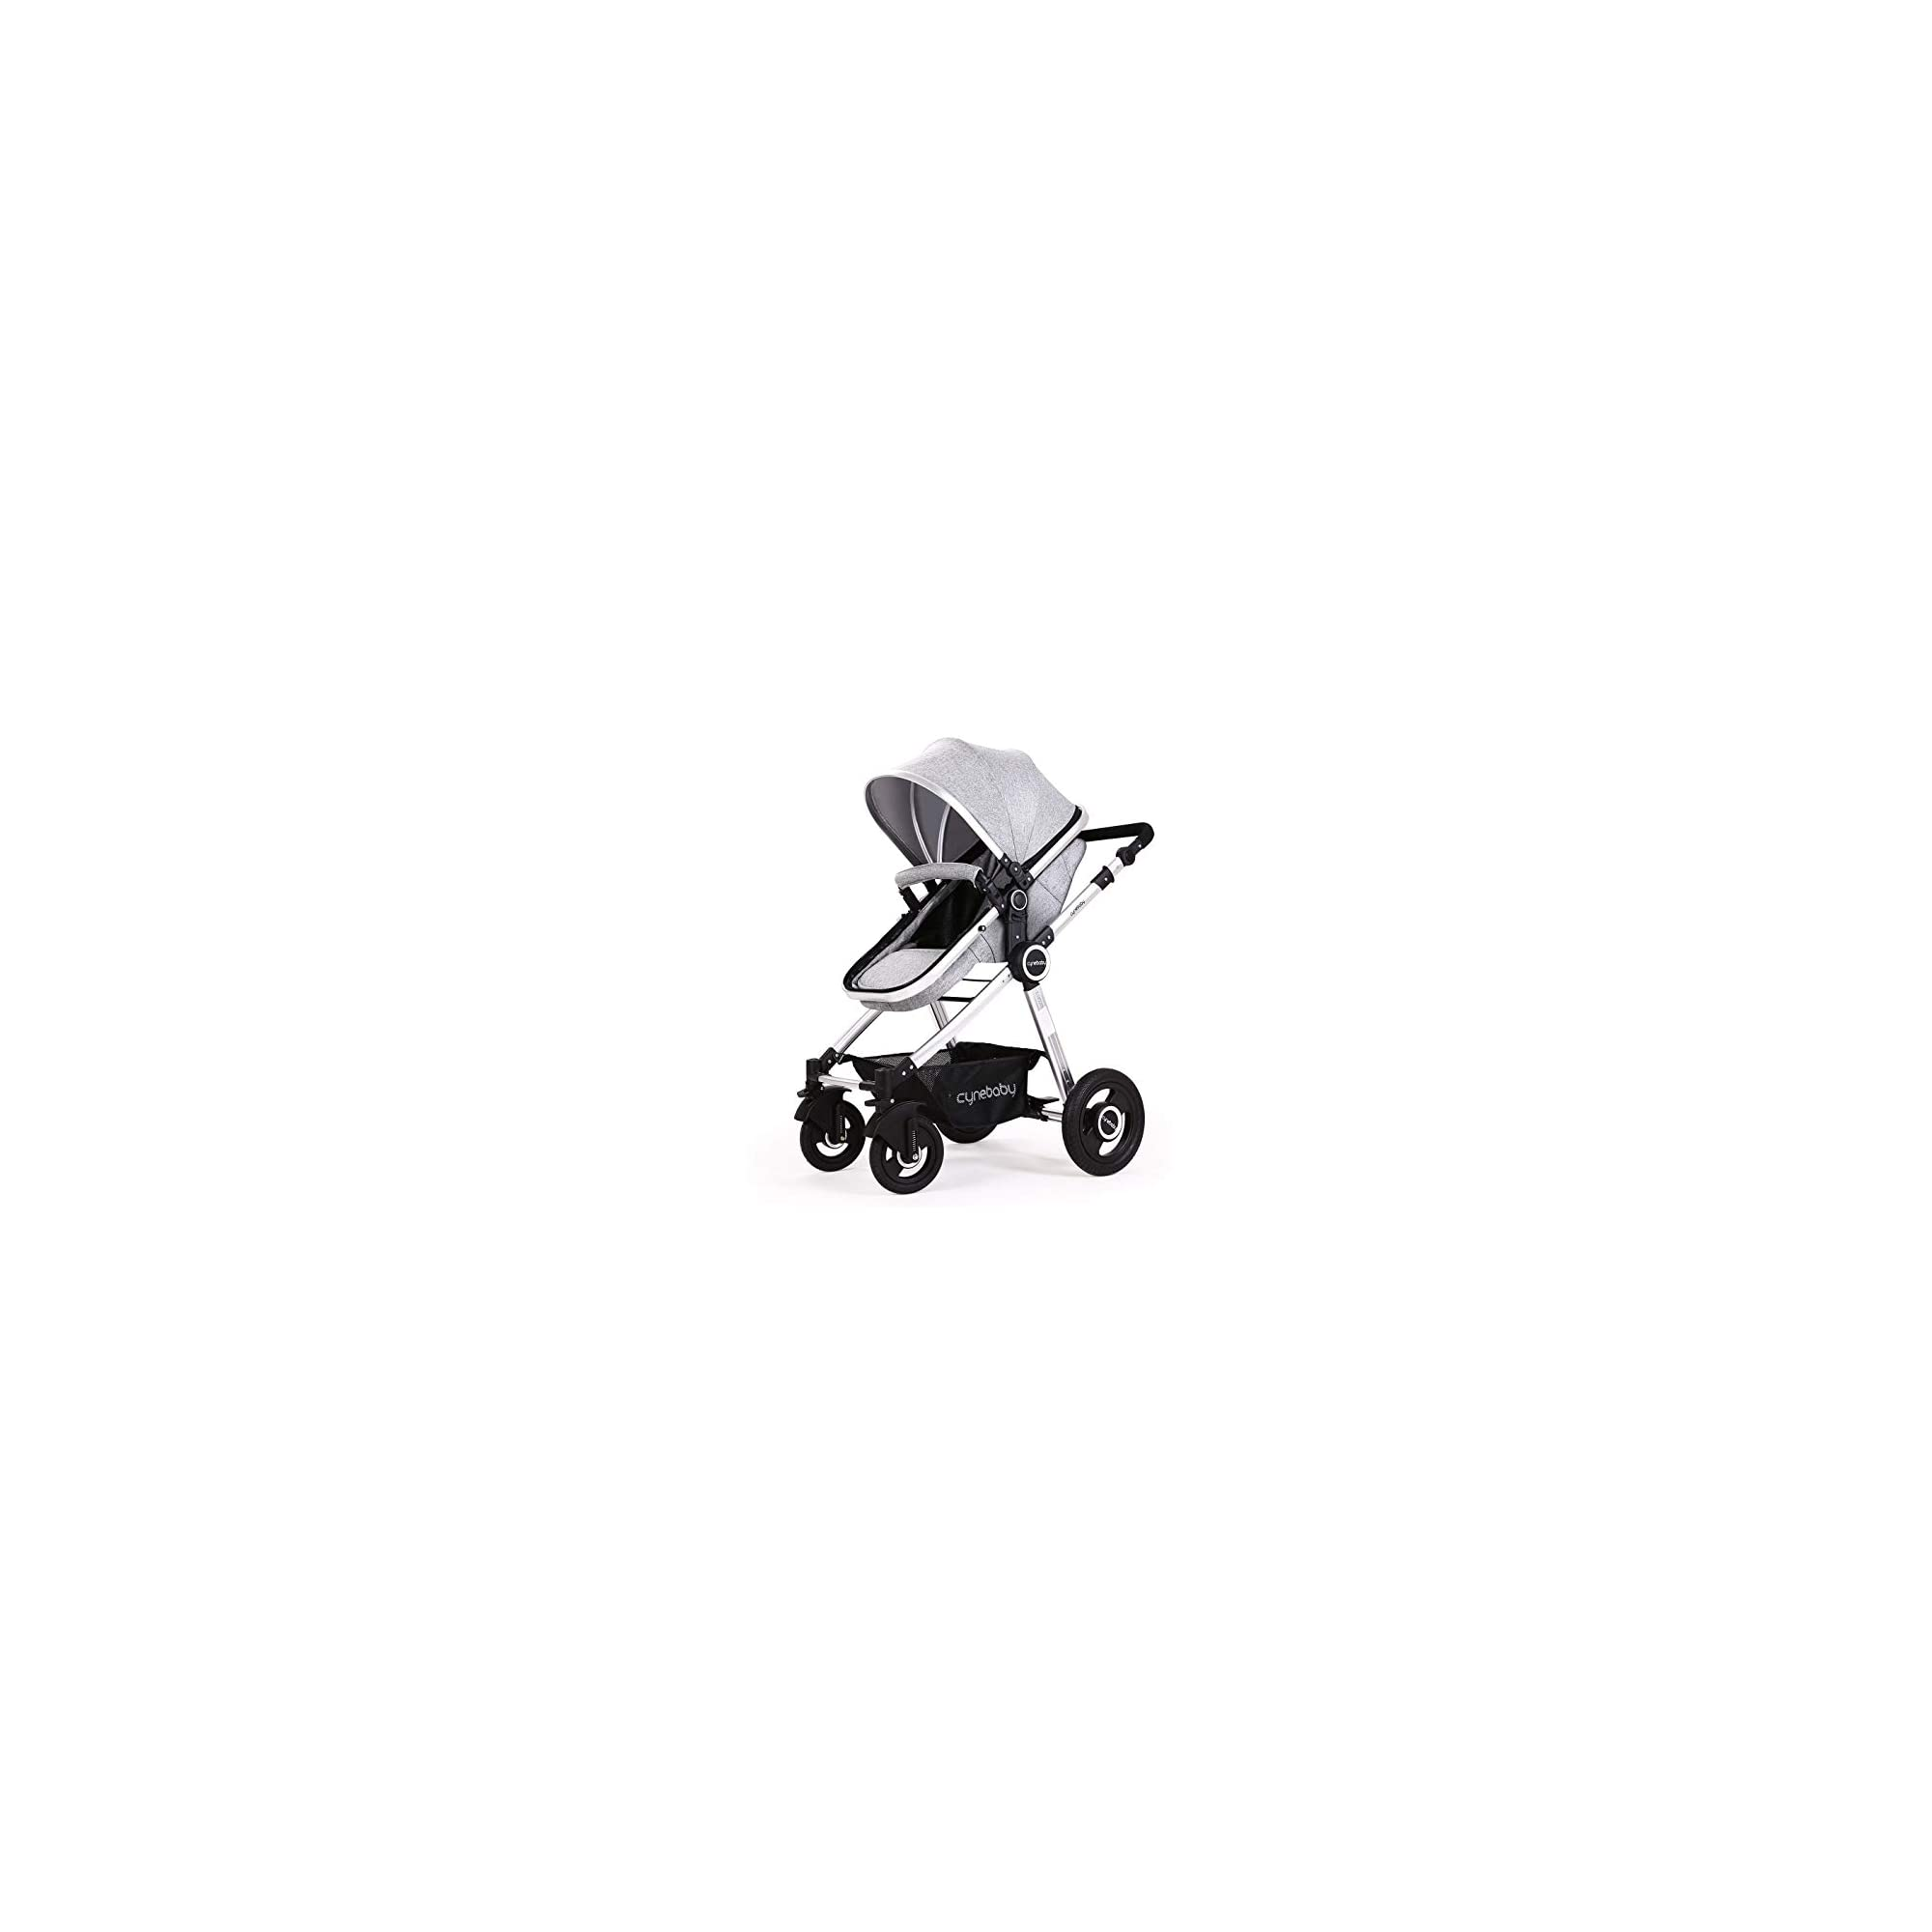 Baby Stroller Bassinet Pram Carriage Stroller – Cynebaby All Terrain Vista City Select Pushchair Stroller Compact Convertible Luxury Strollers add Foot Cover (Fresh Grey)